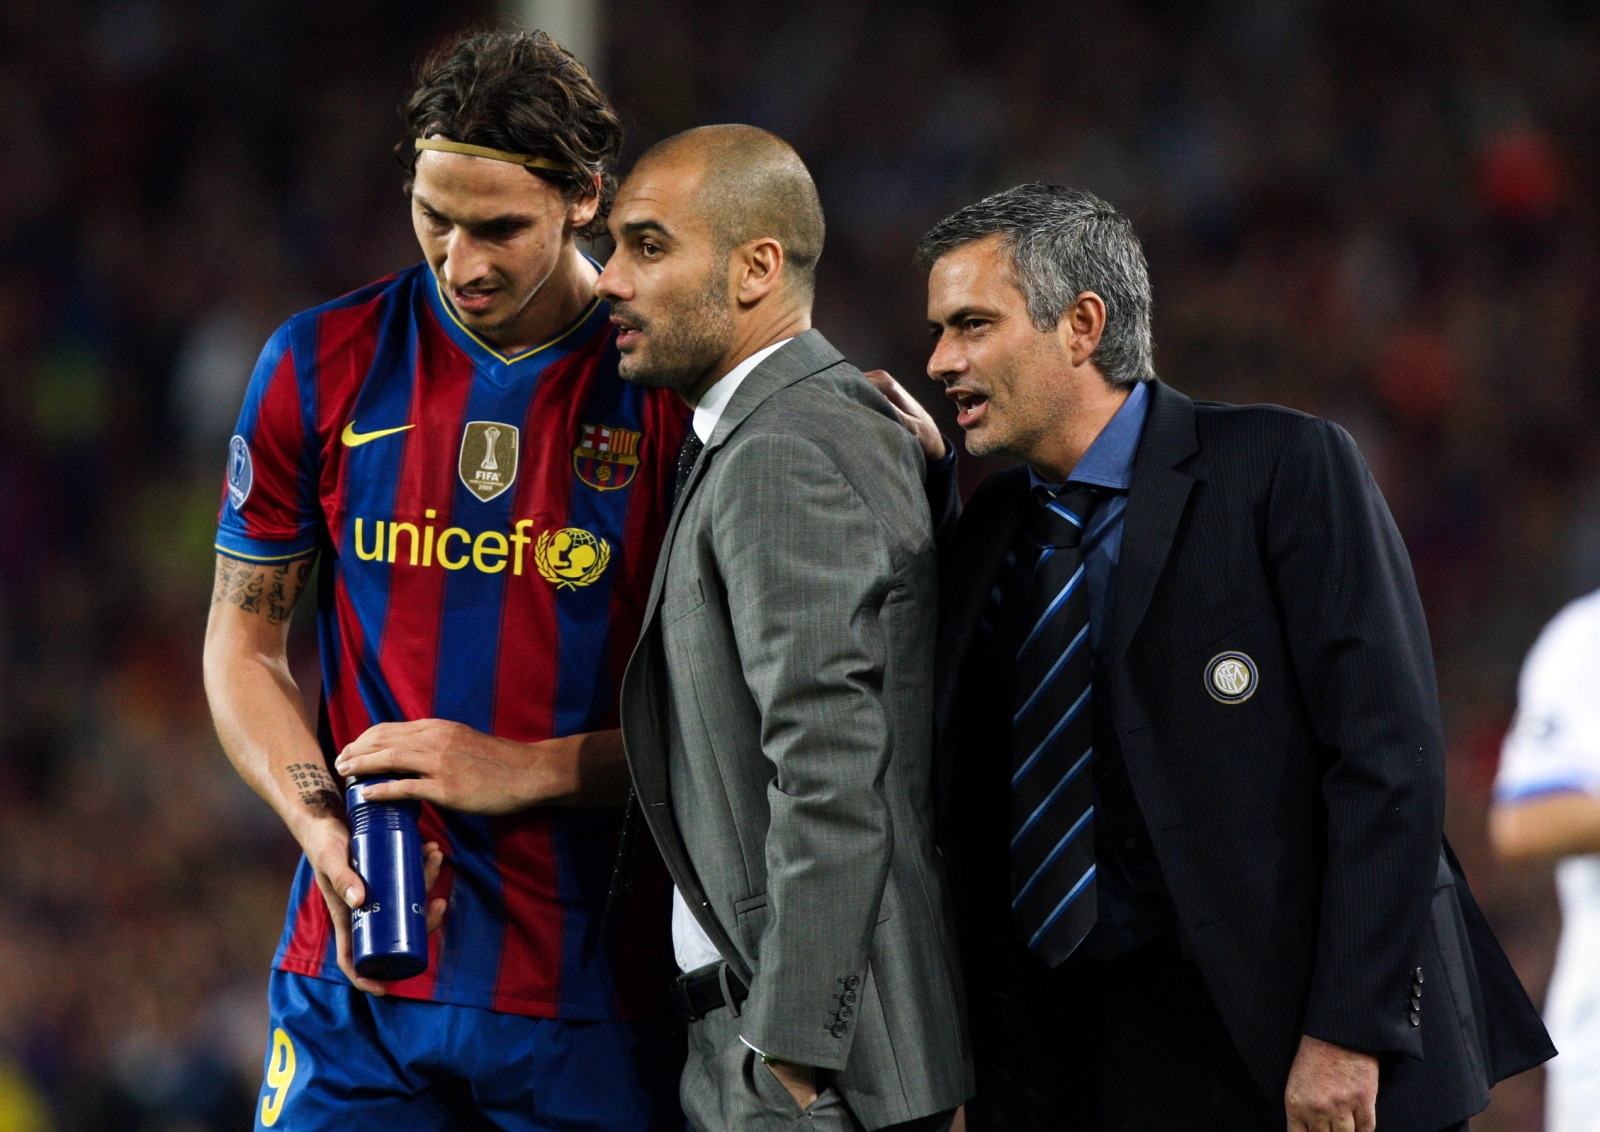 Inter v Barcelona: revisiting the Mourinho-Guardiola ...